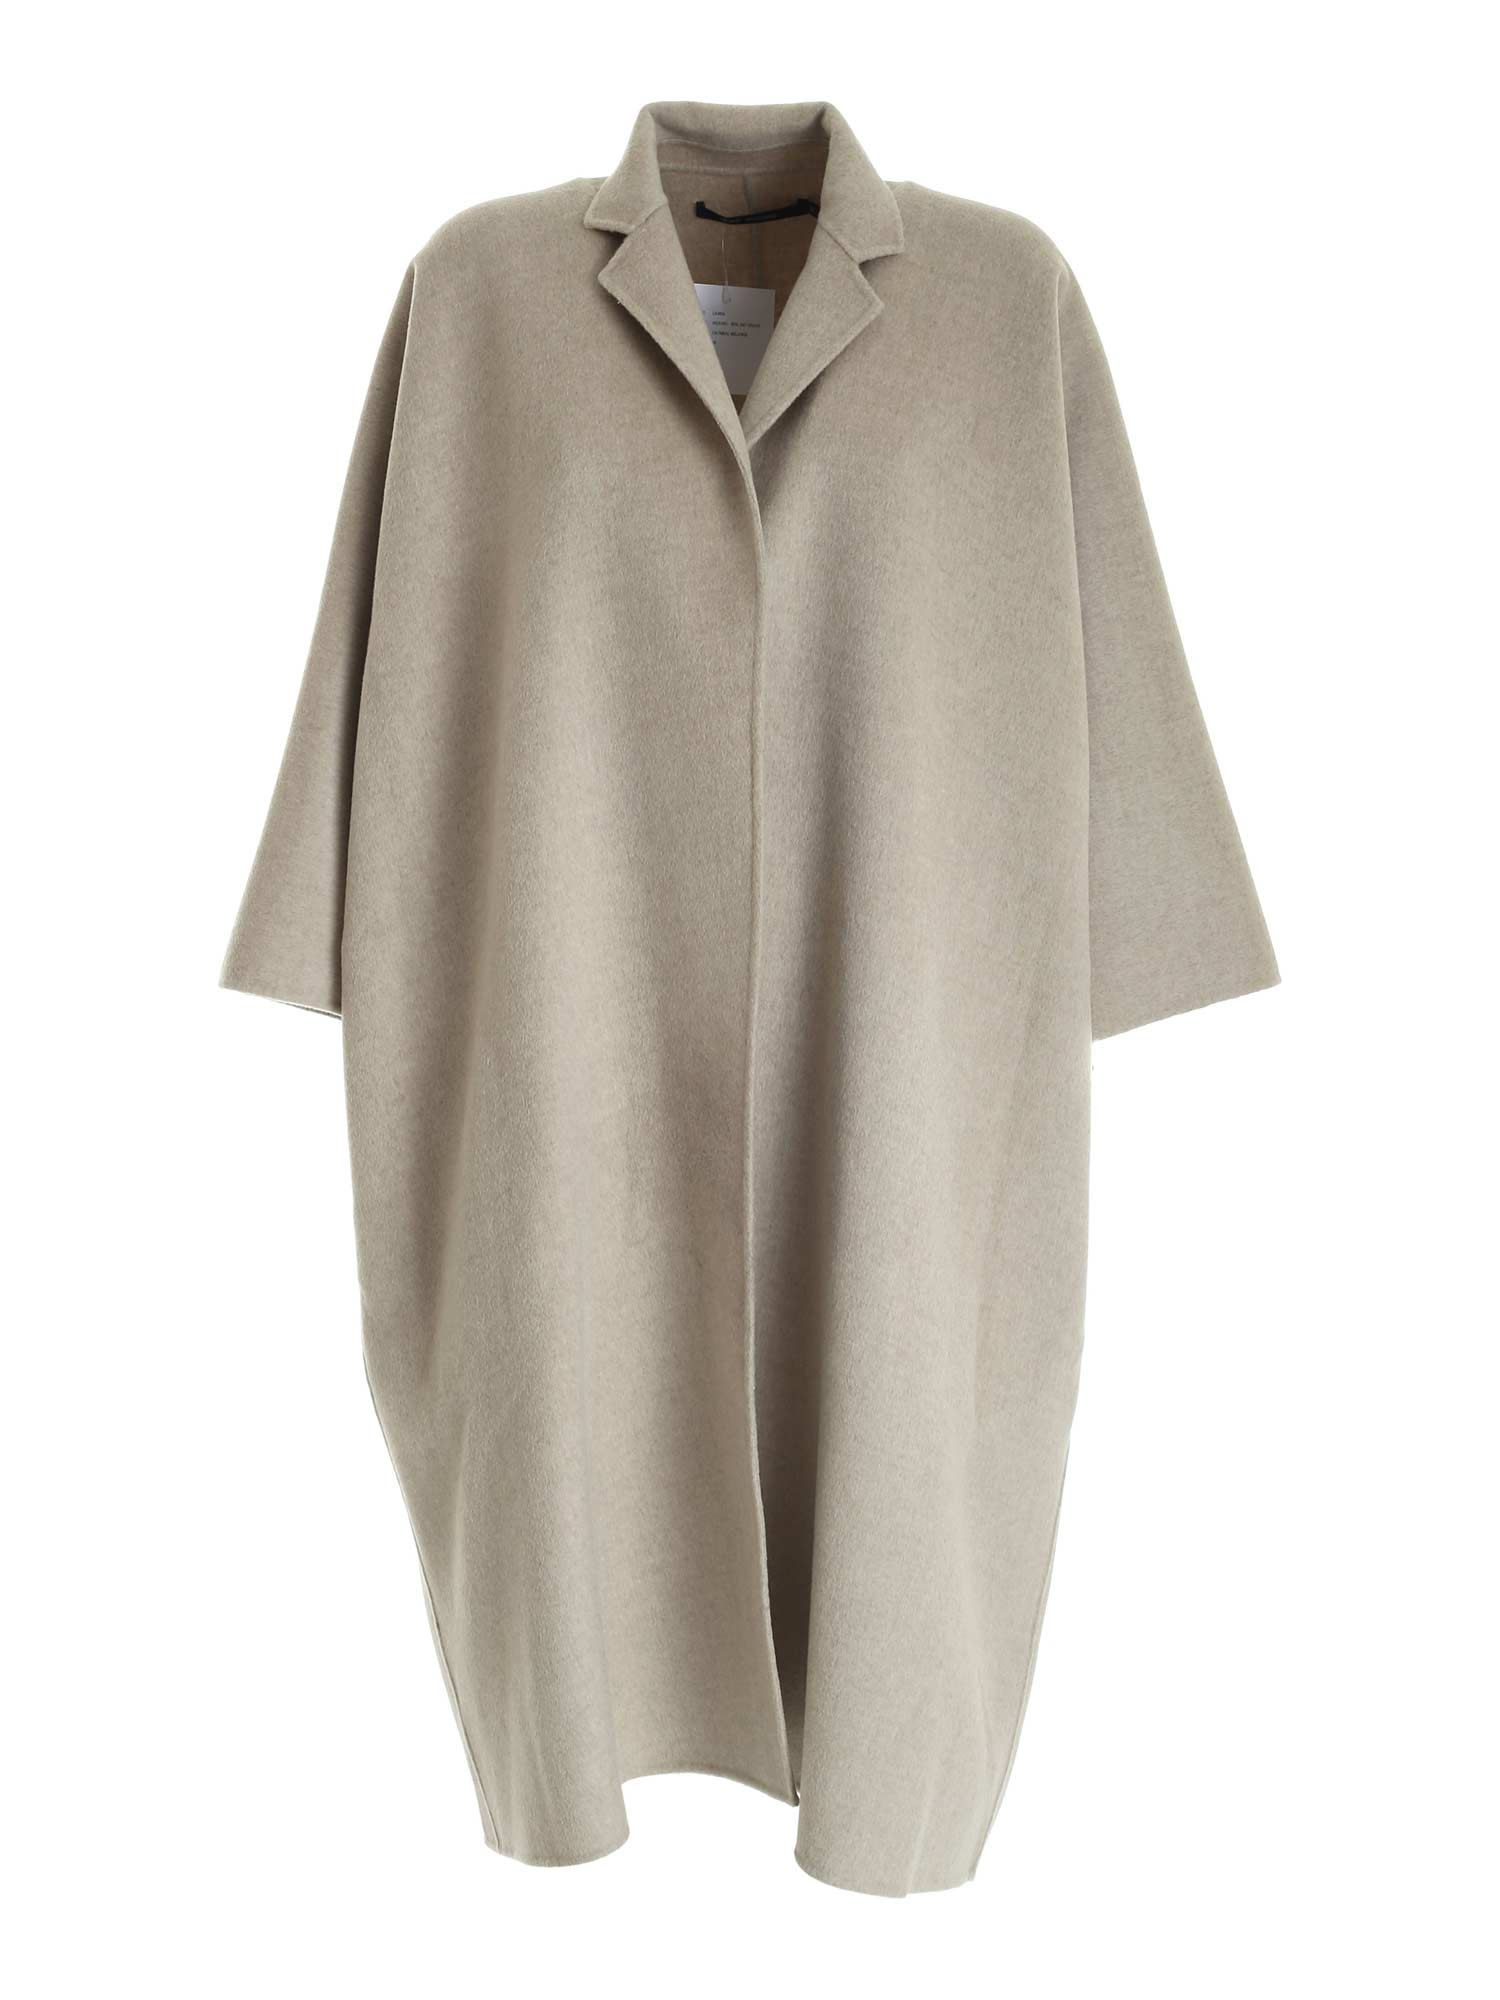 Sofie D'hoore WOOL AND CASHMERE COAT IN BEIGE